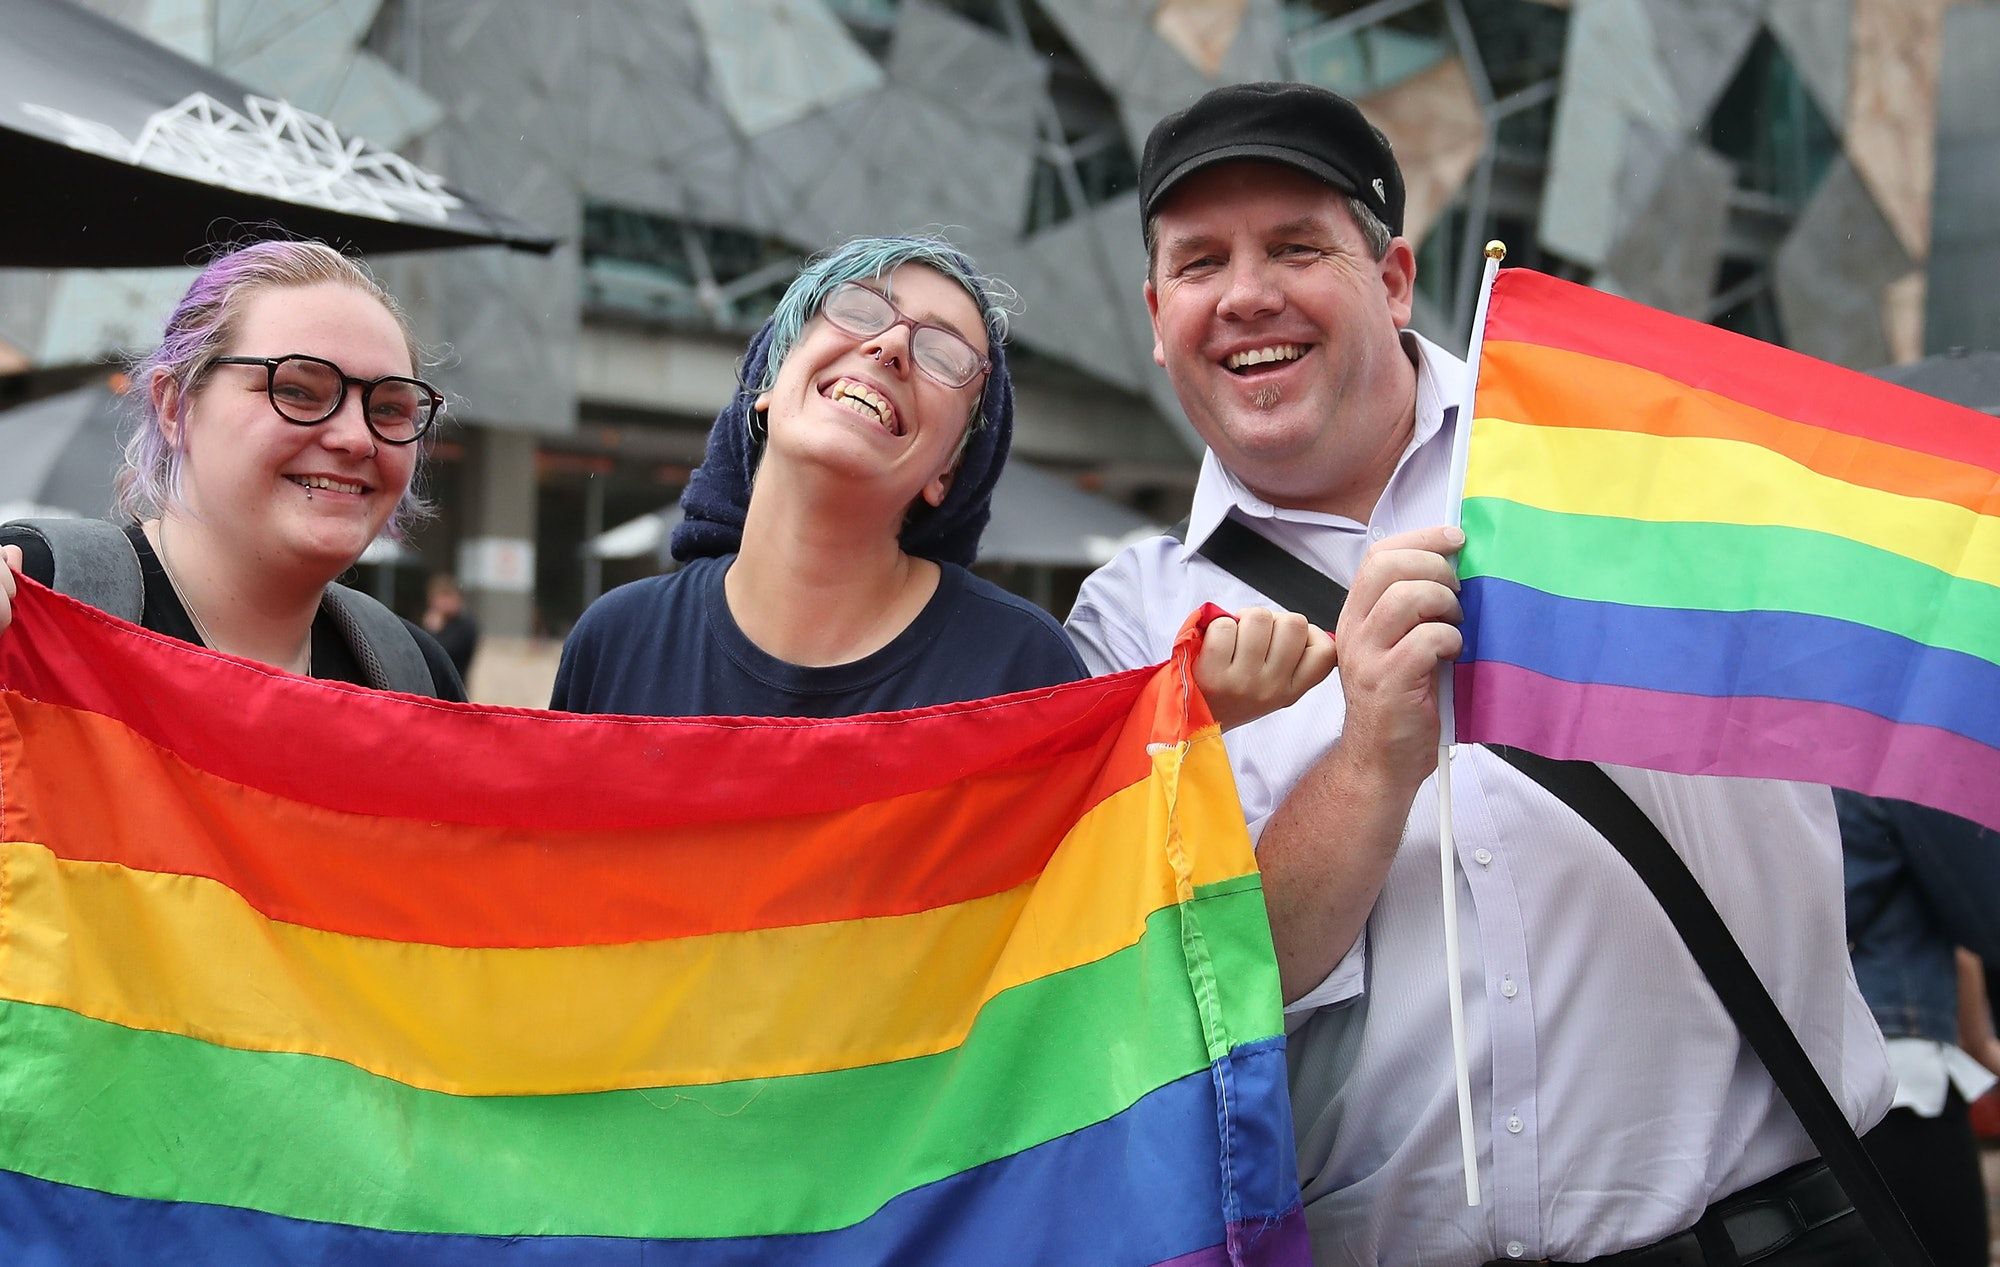 People celebrate as a crowd gathers to watch a large television screen at Federation Square as it is announced that same-sex marriage will be legal in Australia